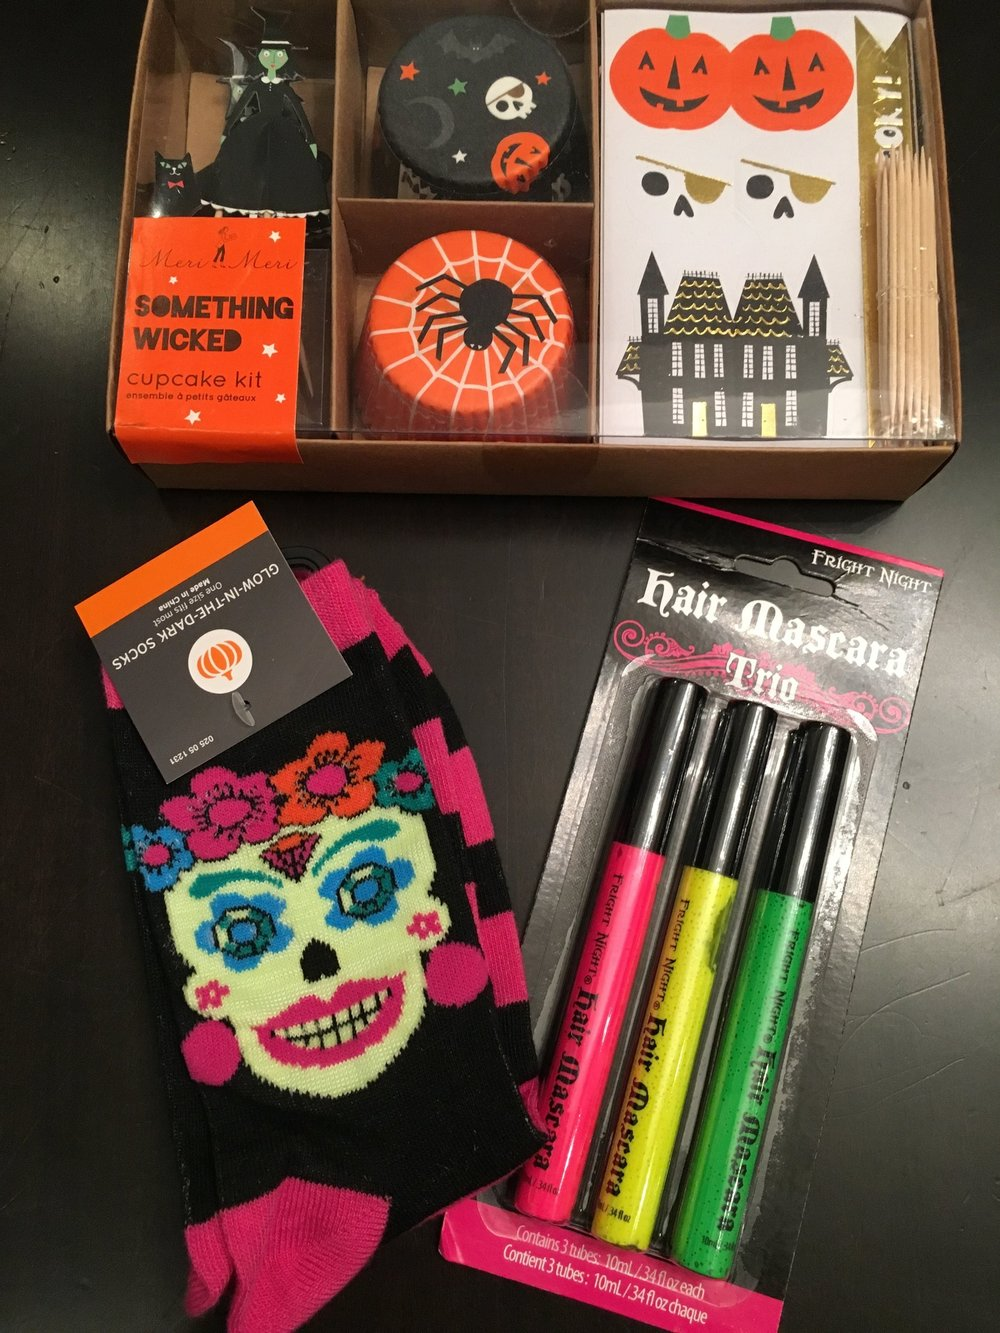 """My daughter is dressing up as a Harry Potter Gryffindor student (thank you for not confusing her with Hermione). Her  pinch  includes:hair mascara, a cupcake kit and some """"smell my feet"""" Day of the Dead socks."""